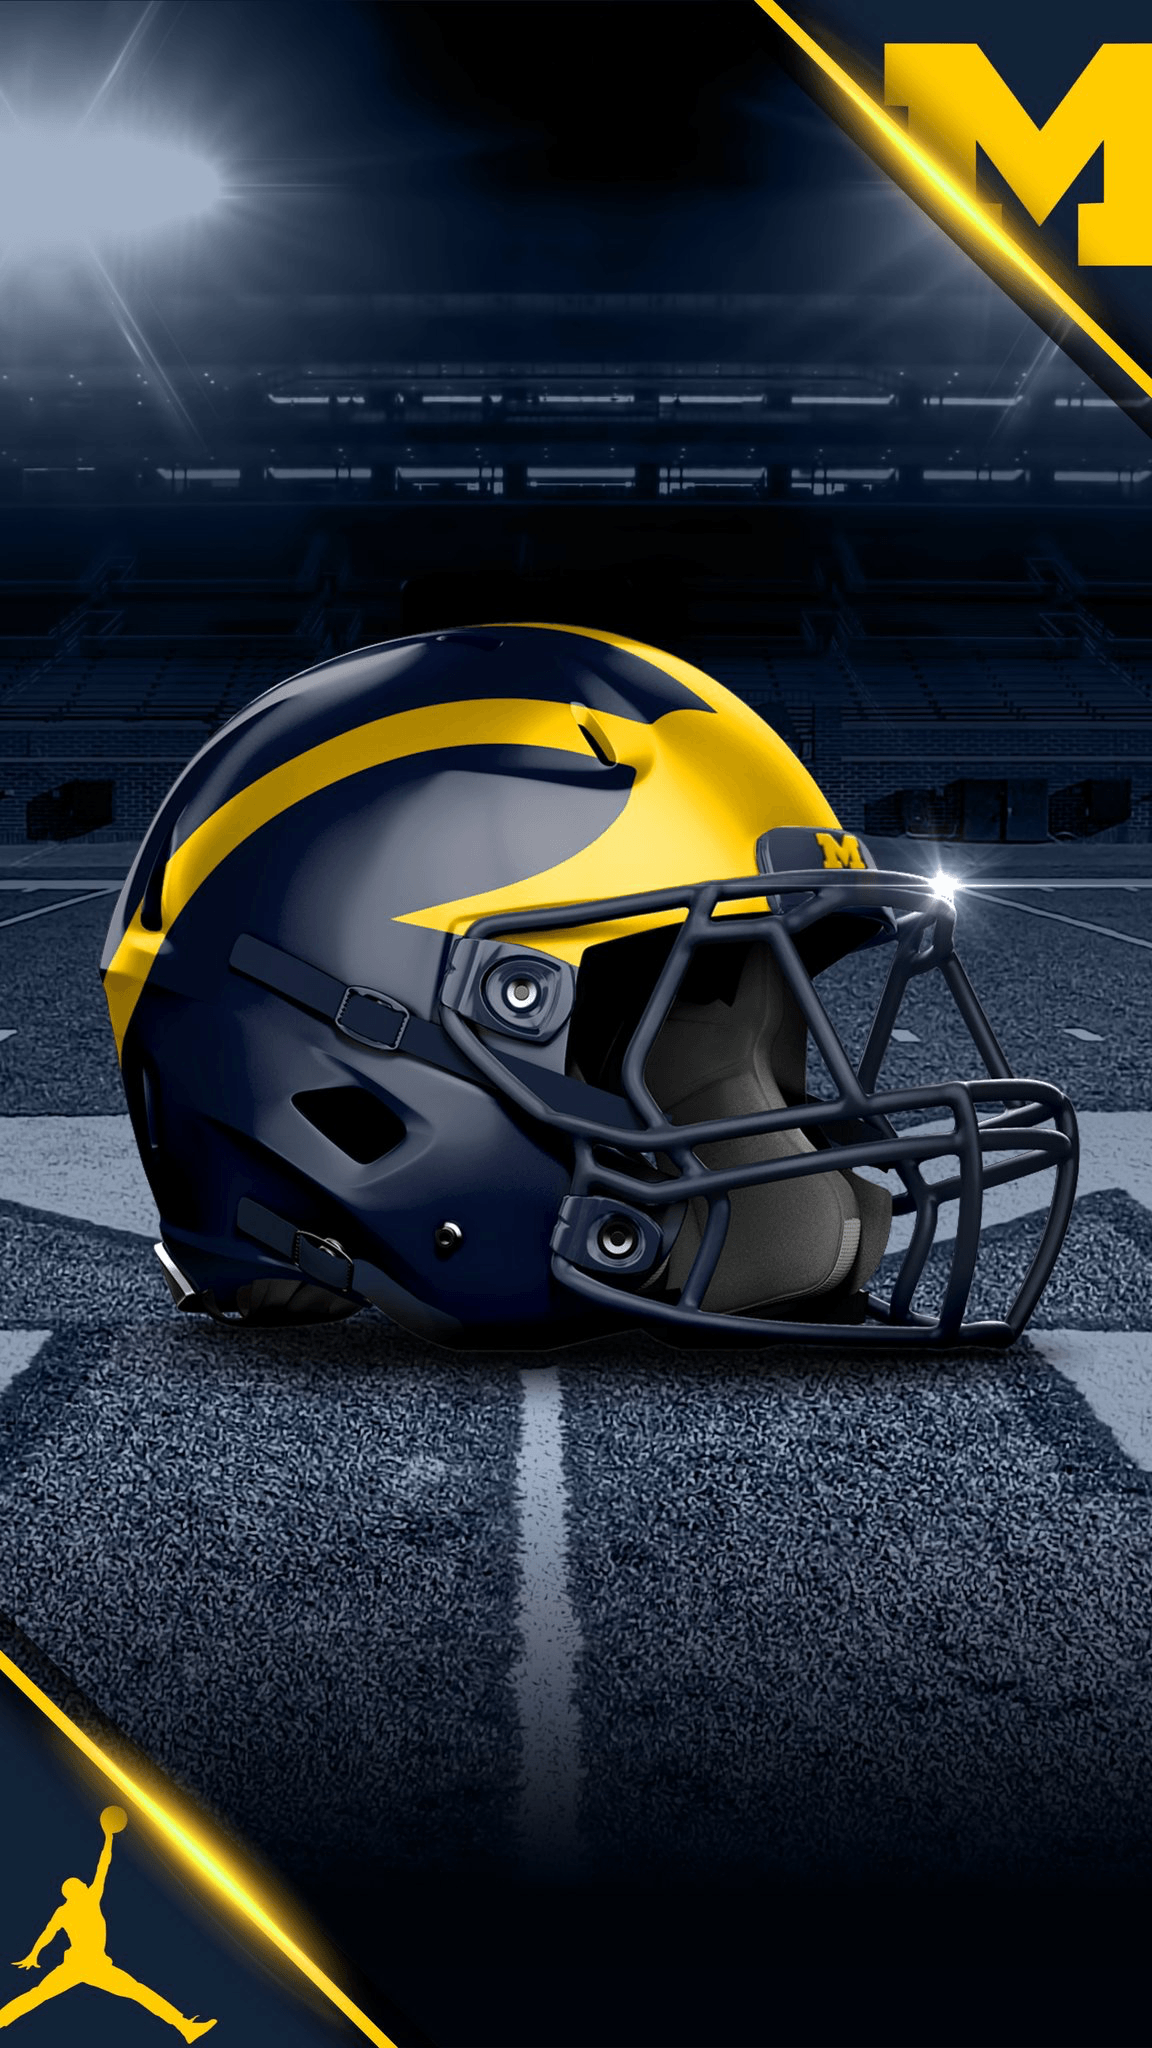 Iphone Xr Wallpaper Football More At Https Docfest Org Iphone Xr Wallpaper Footba Michigan Wolverines Football Michigan Football Michigan Football Helmet